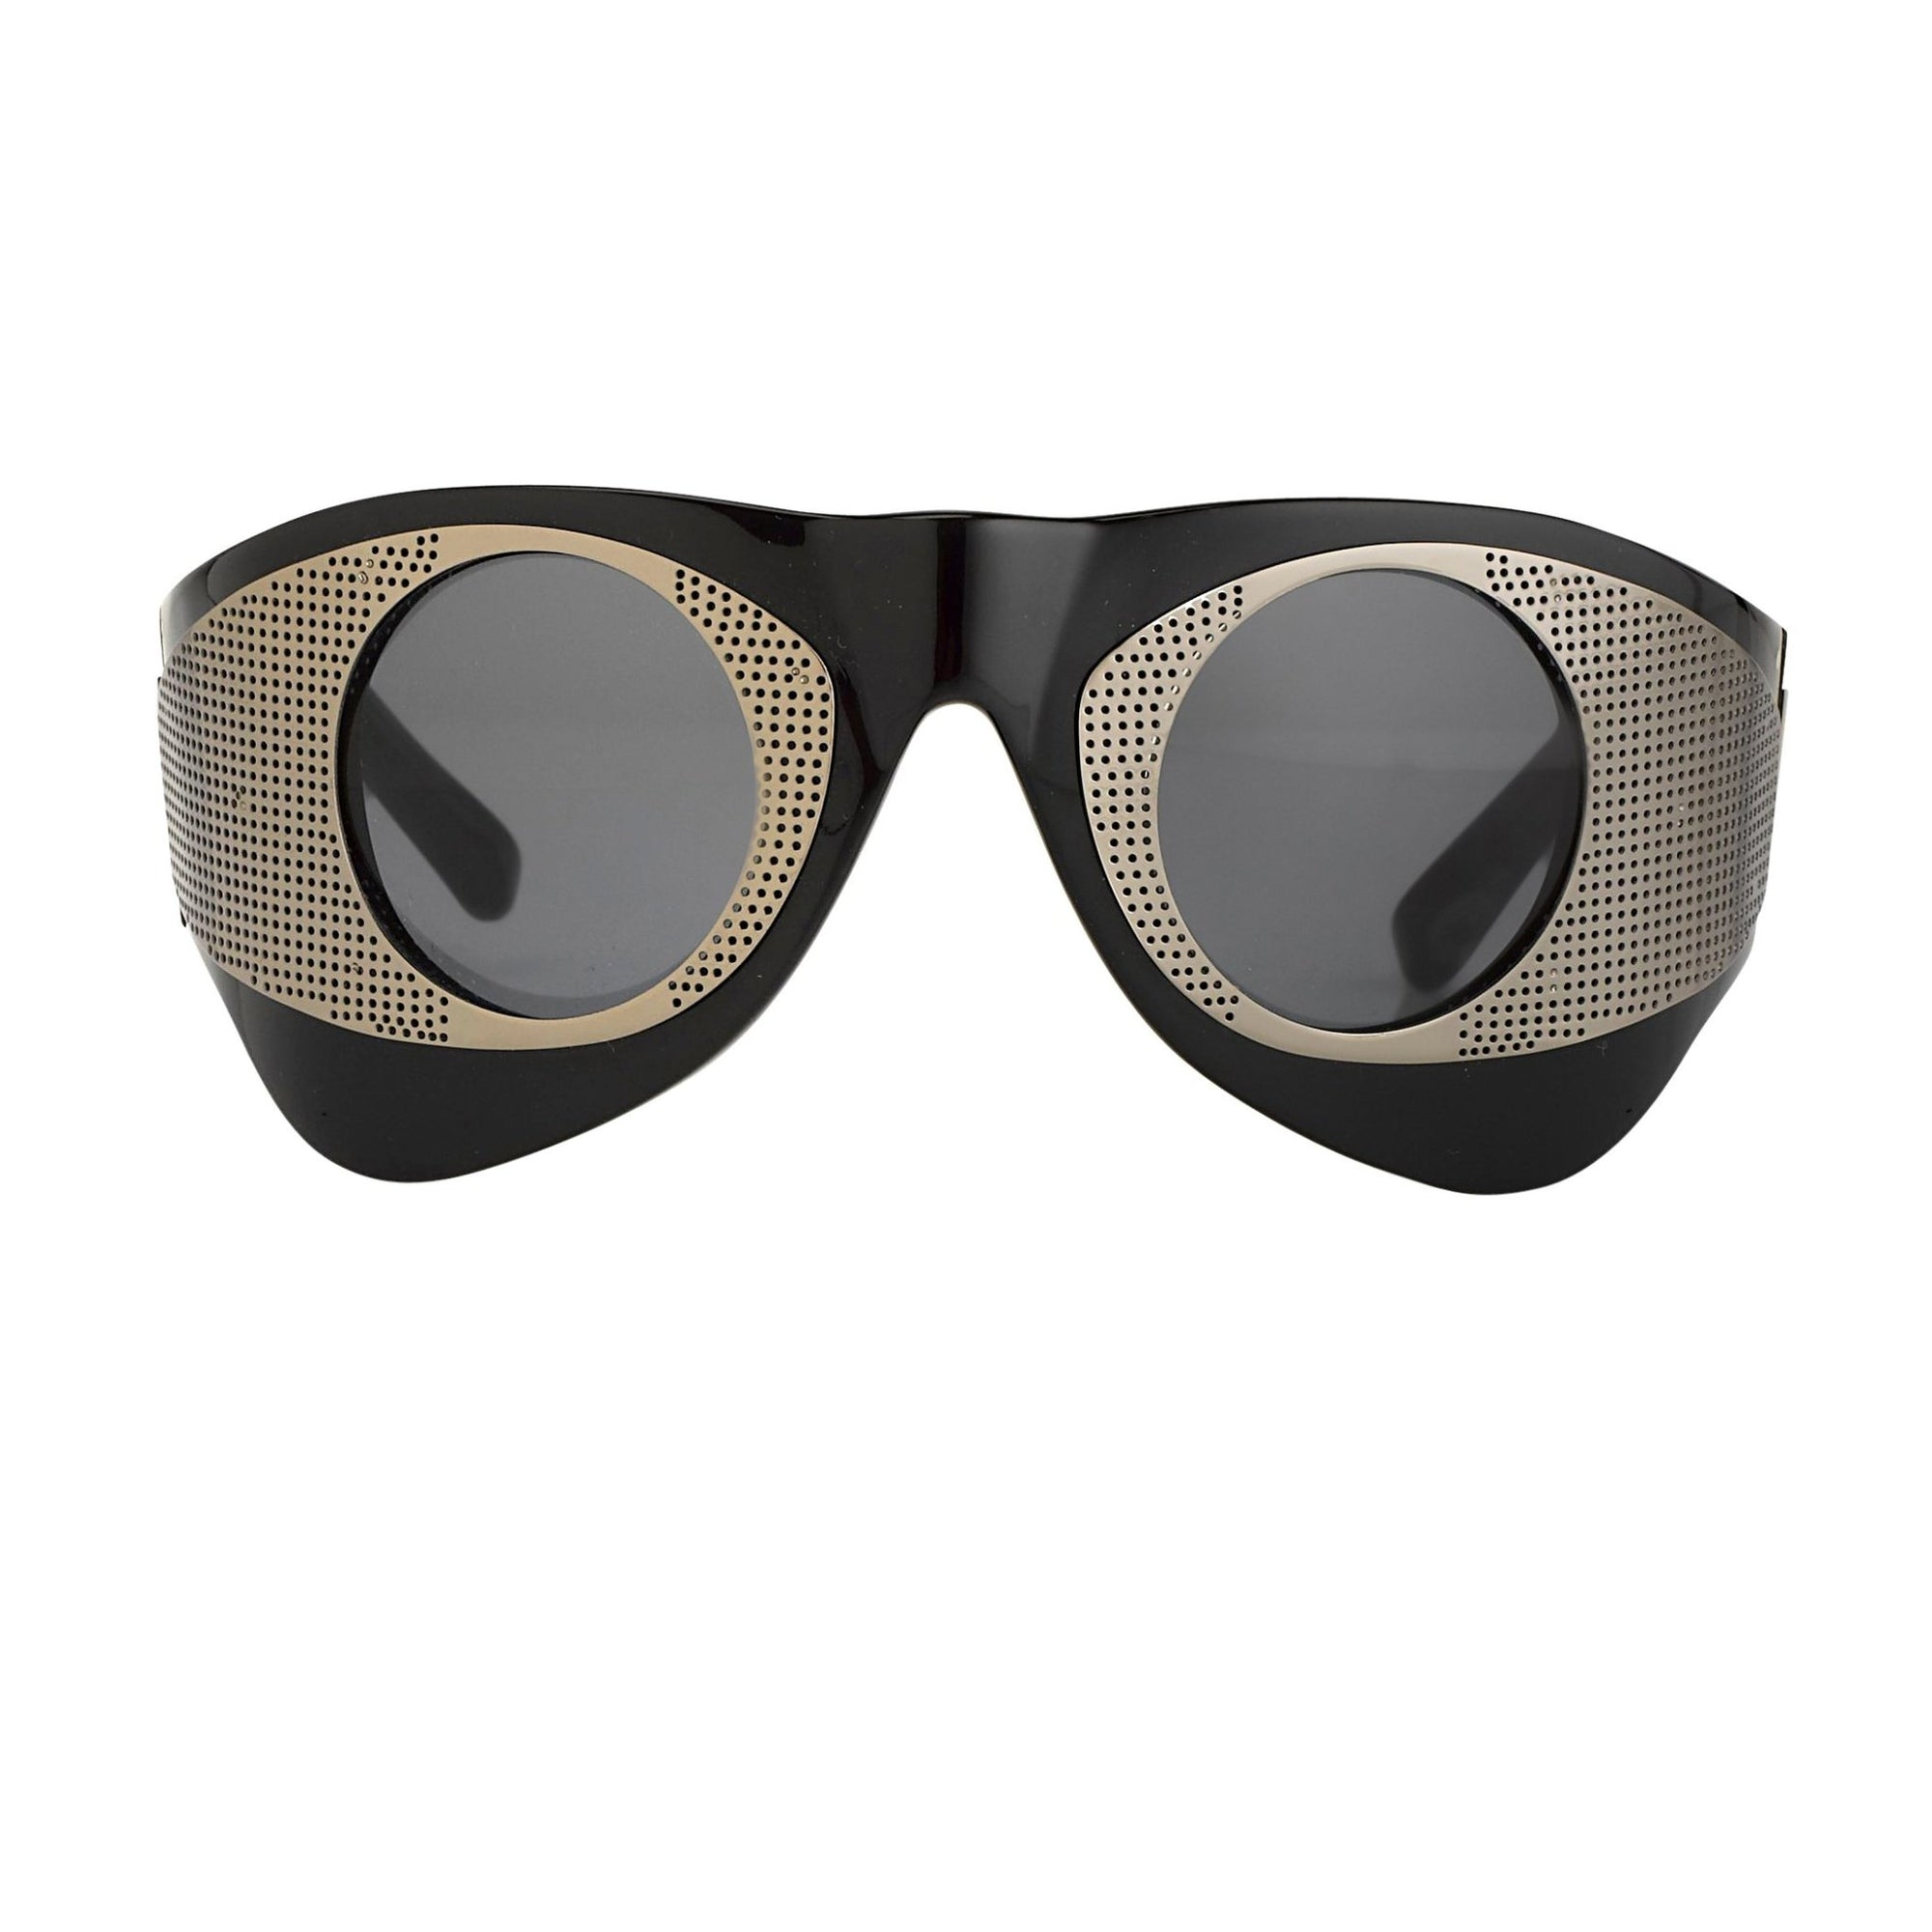 Todd Lynn Sunglasses Special Frame Black/Brown and Grey Lenses - TL3C4SUN - Watches & Crystals